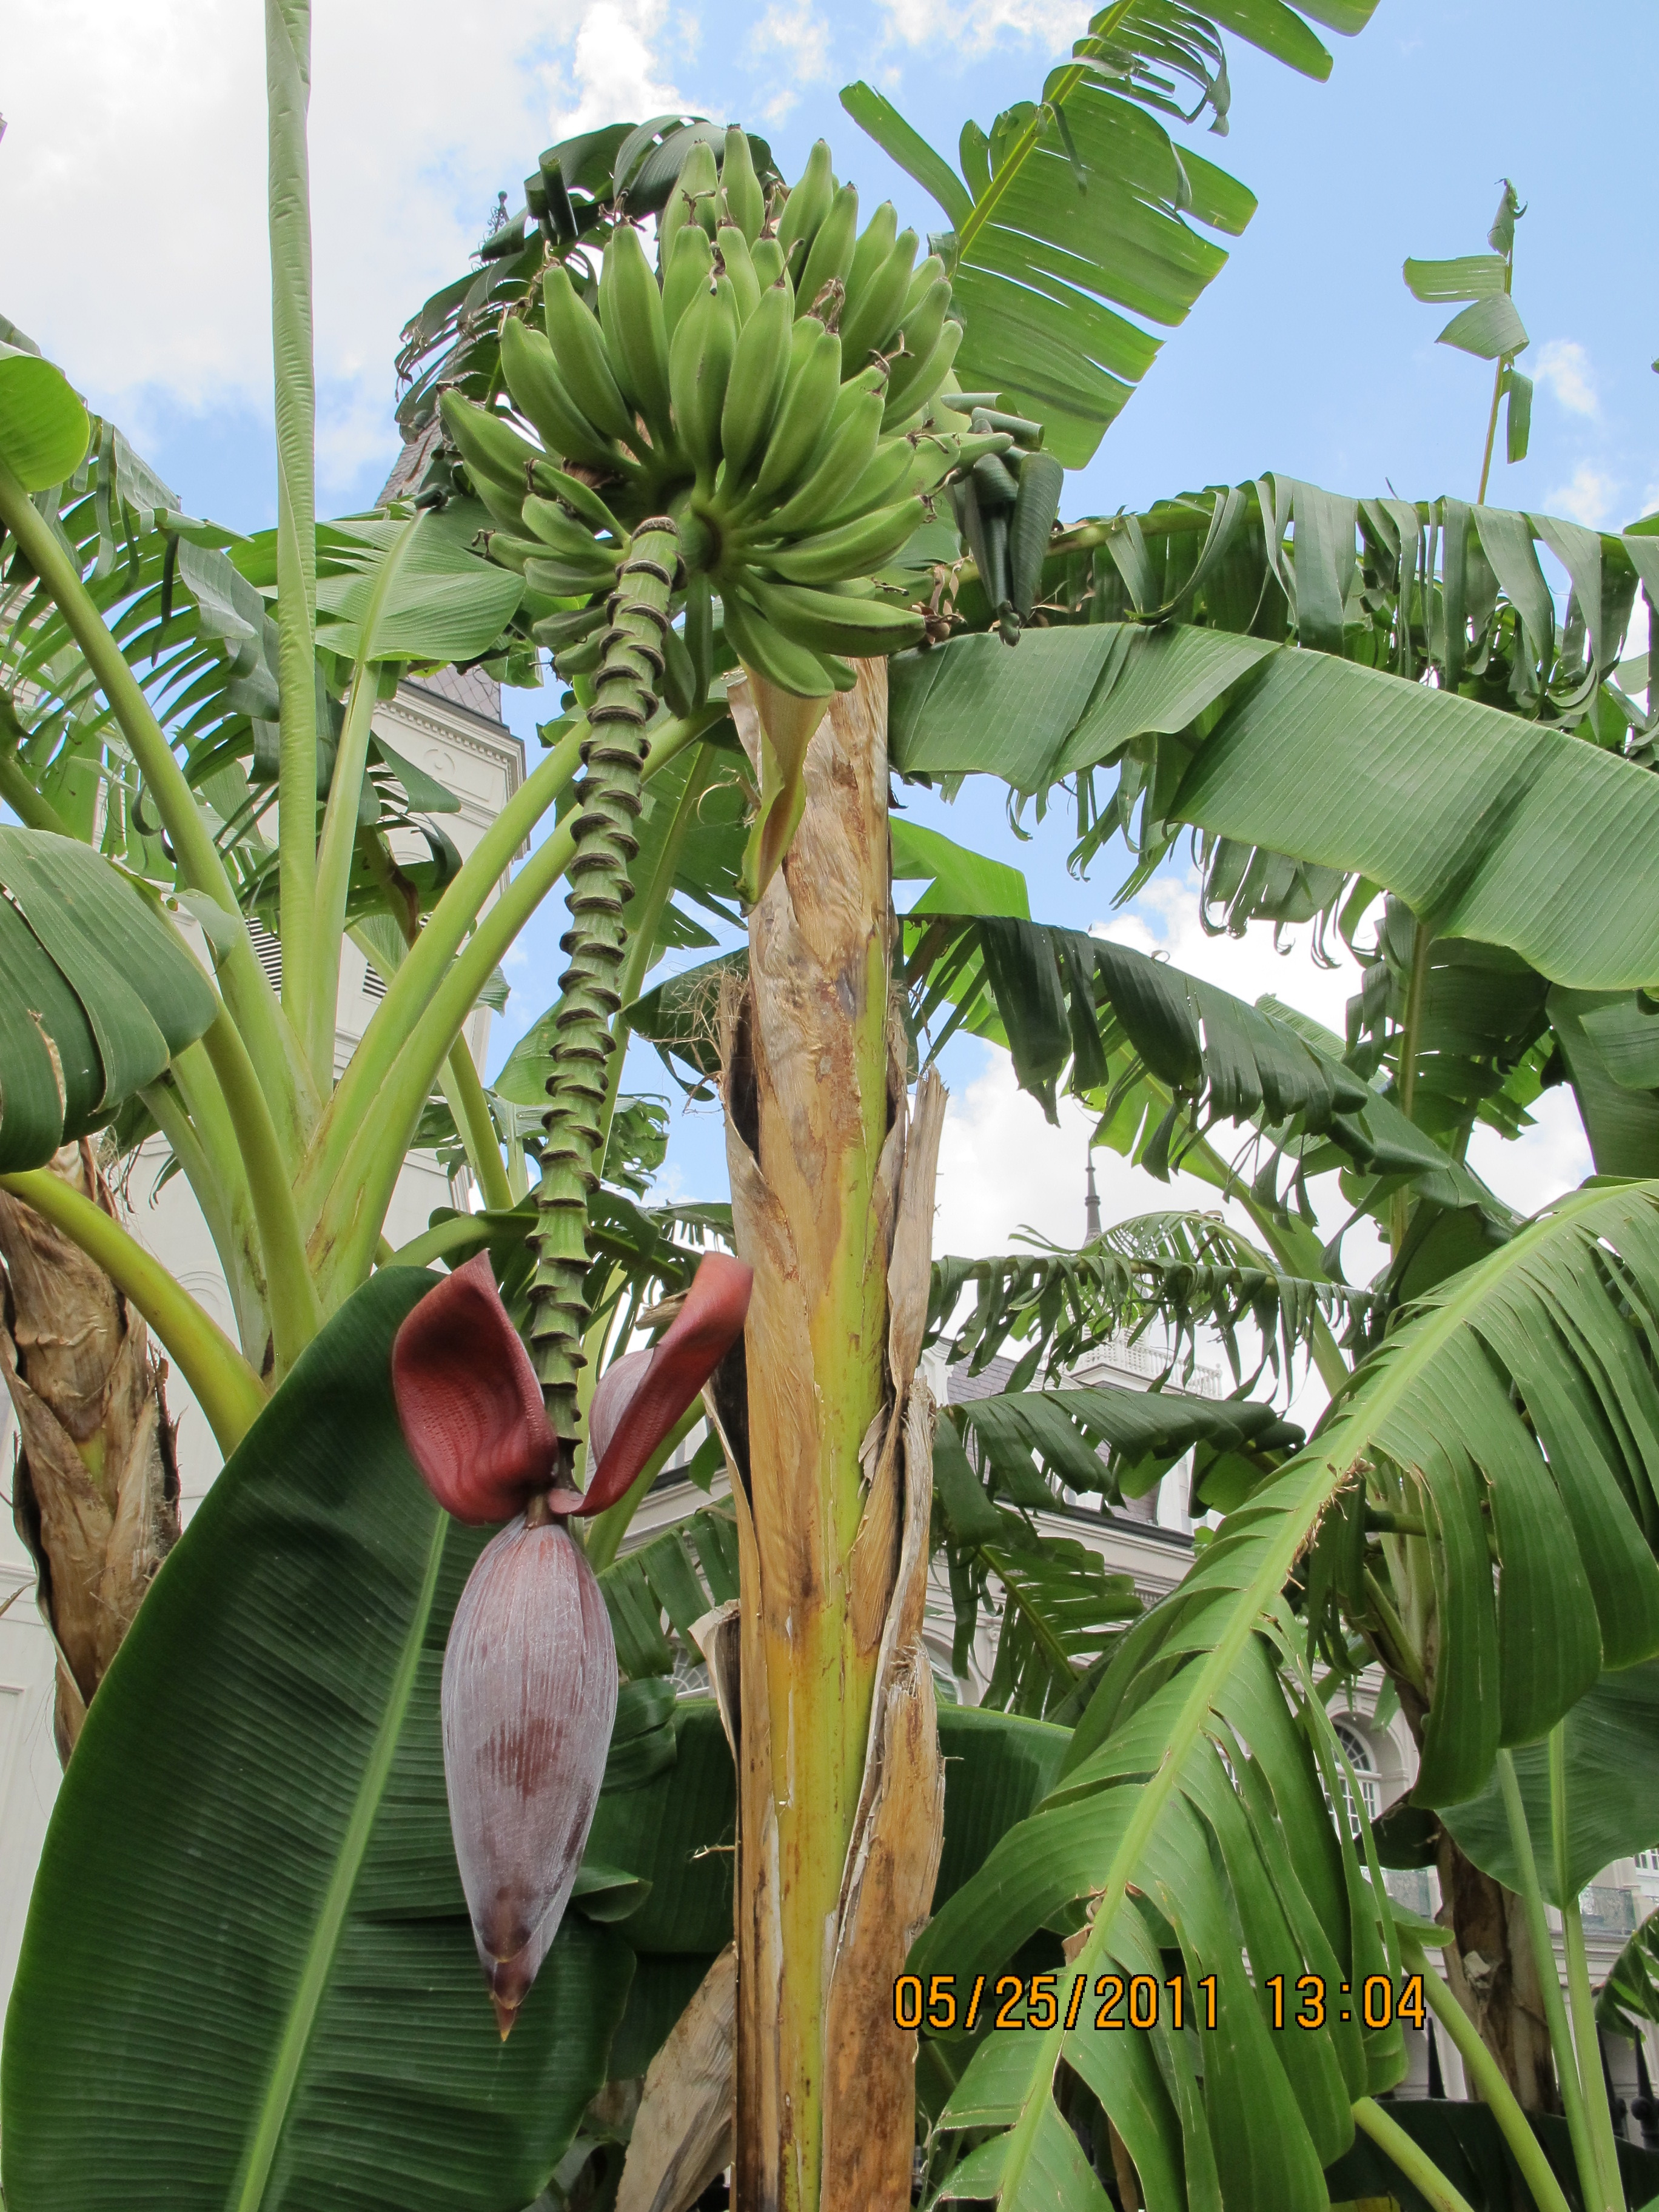 Jackson Square Banana Tree Caretaking Couple 2736x3648